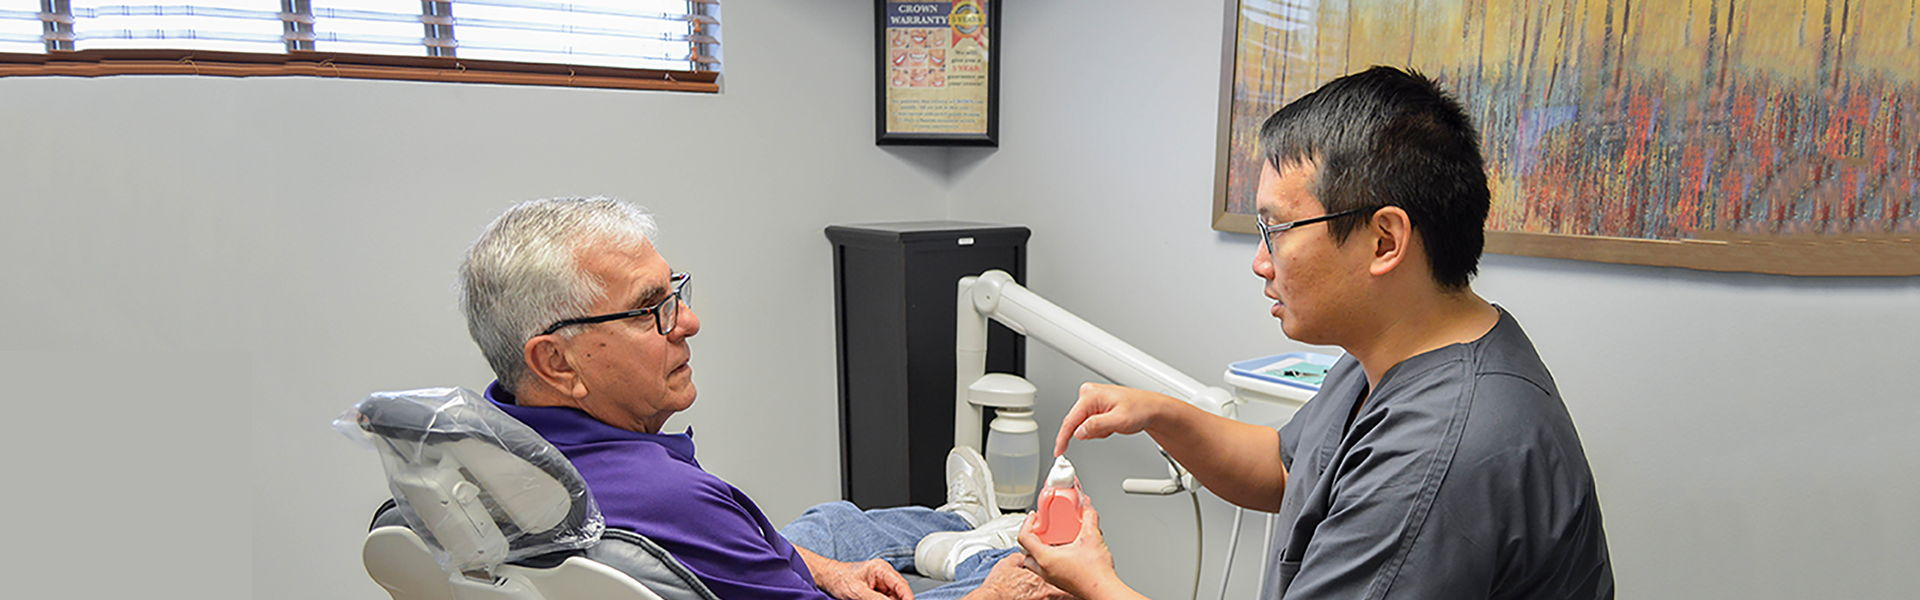 Restoration Dentistry at Bencaz Family Dentistry Denham Springs, LA